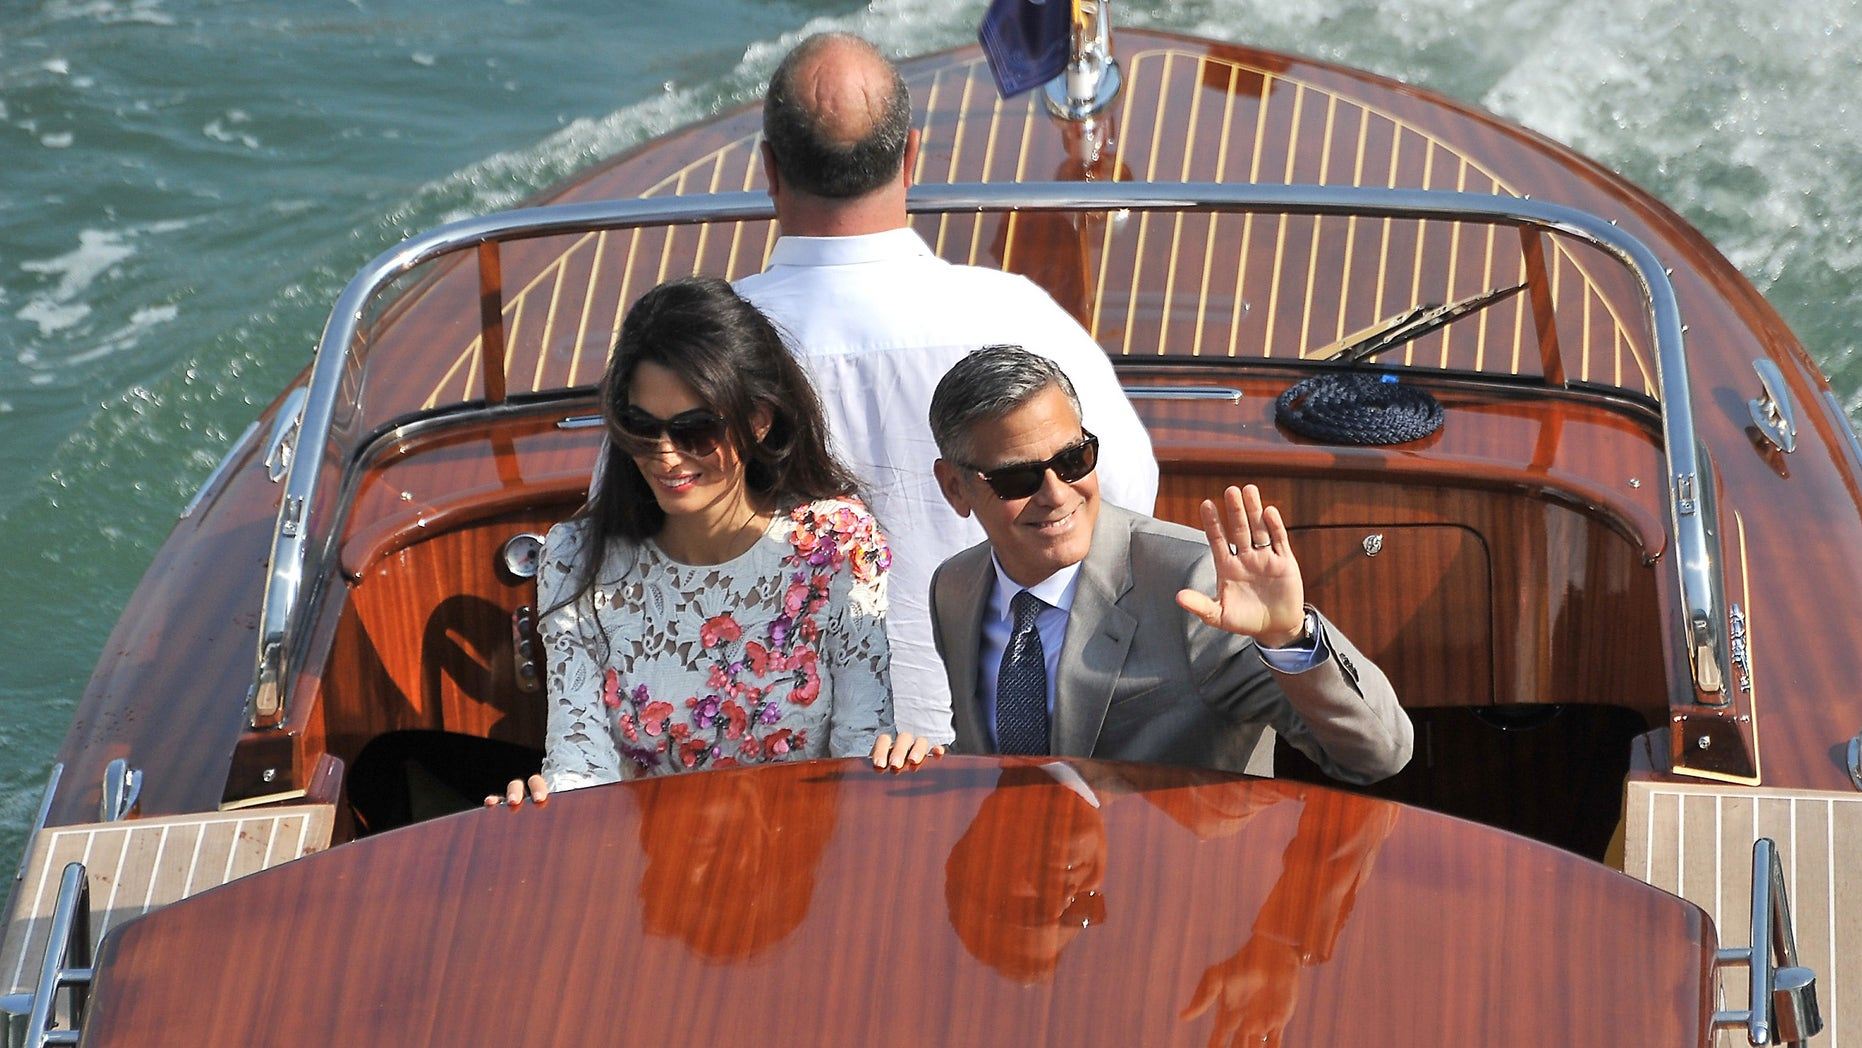 George Clooney and his wife Amal Alamuddin, cruise the Grand Canal after leaving the Aman luxury Hotel in Venice, Italy, Sunday, Sept. 28, 2014. George Clooney married human rights lawyer Amal Alamuddin Saturday, the actor's representative said, out of sight of pursuing paparazzi and adoring crowds. (AP Photo/Luigi Costantini)